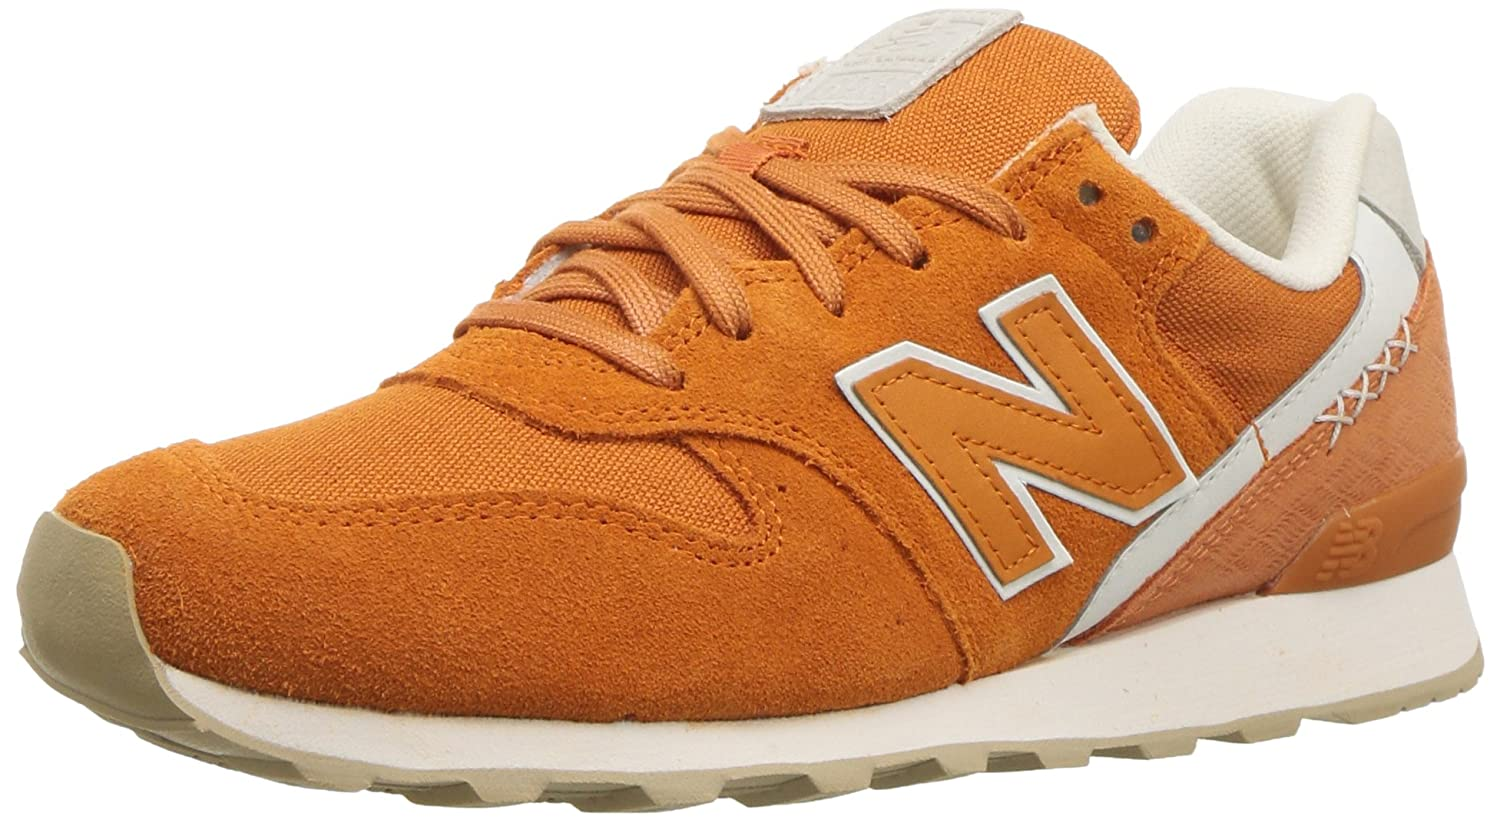 New Balance Women's 696 v1 Sneaker B0751RVY7N 7.5 B(M) US|Vintage Orange/Sea Salt